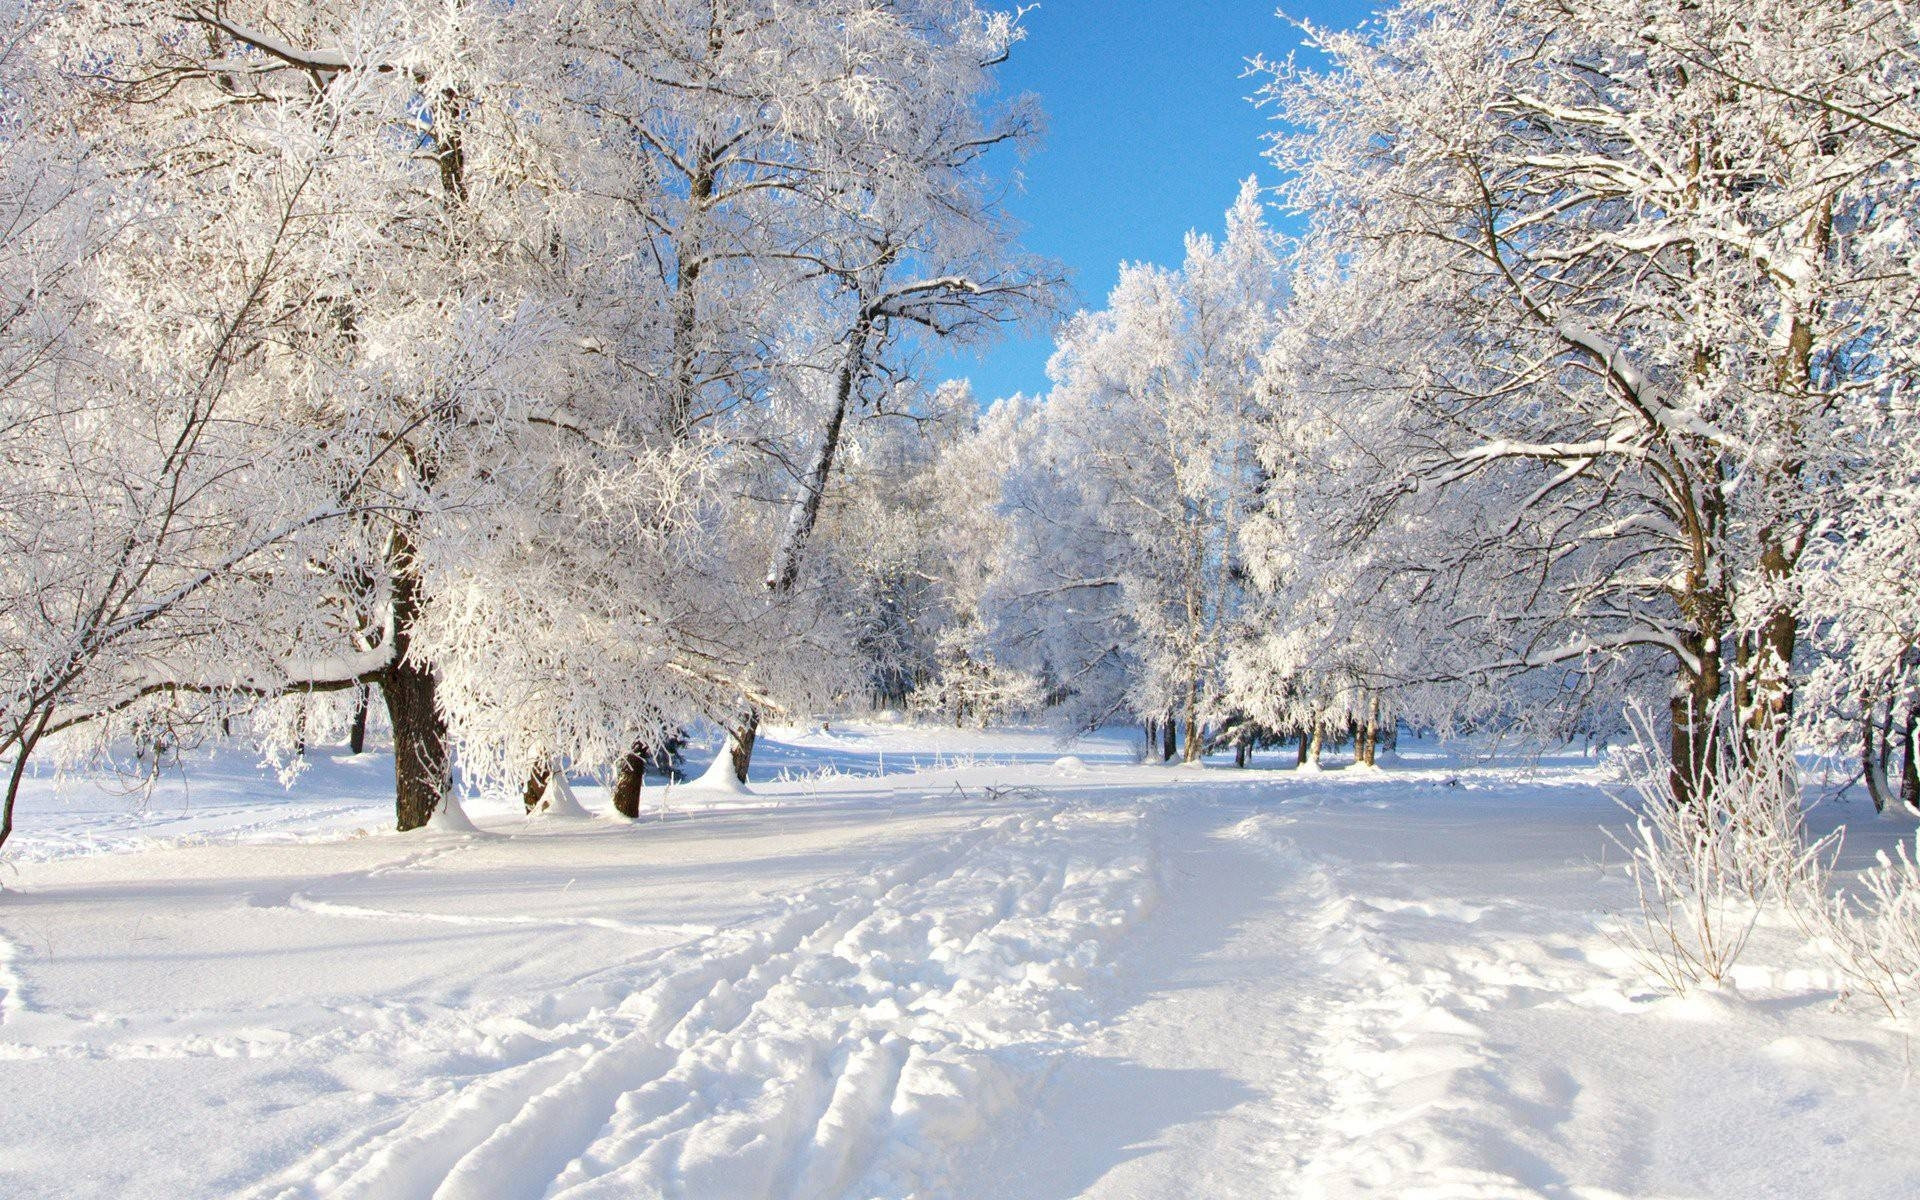 10 Most Popular Free Winter Wallpapers And Screensavers FULL HD 1080p For PC Desktop